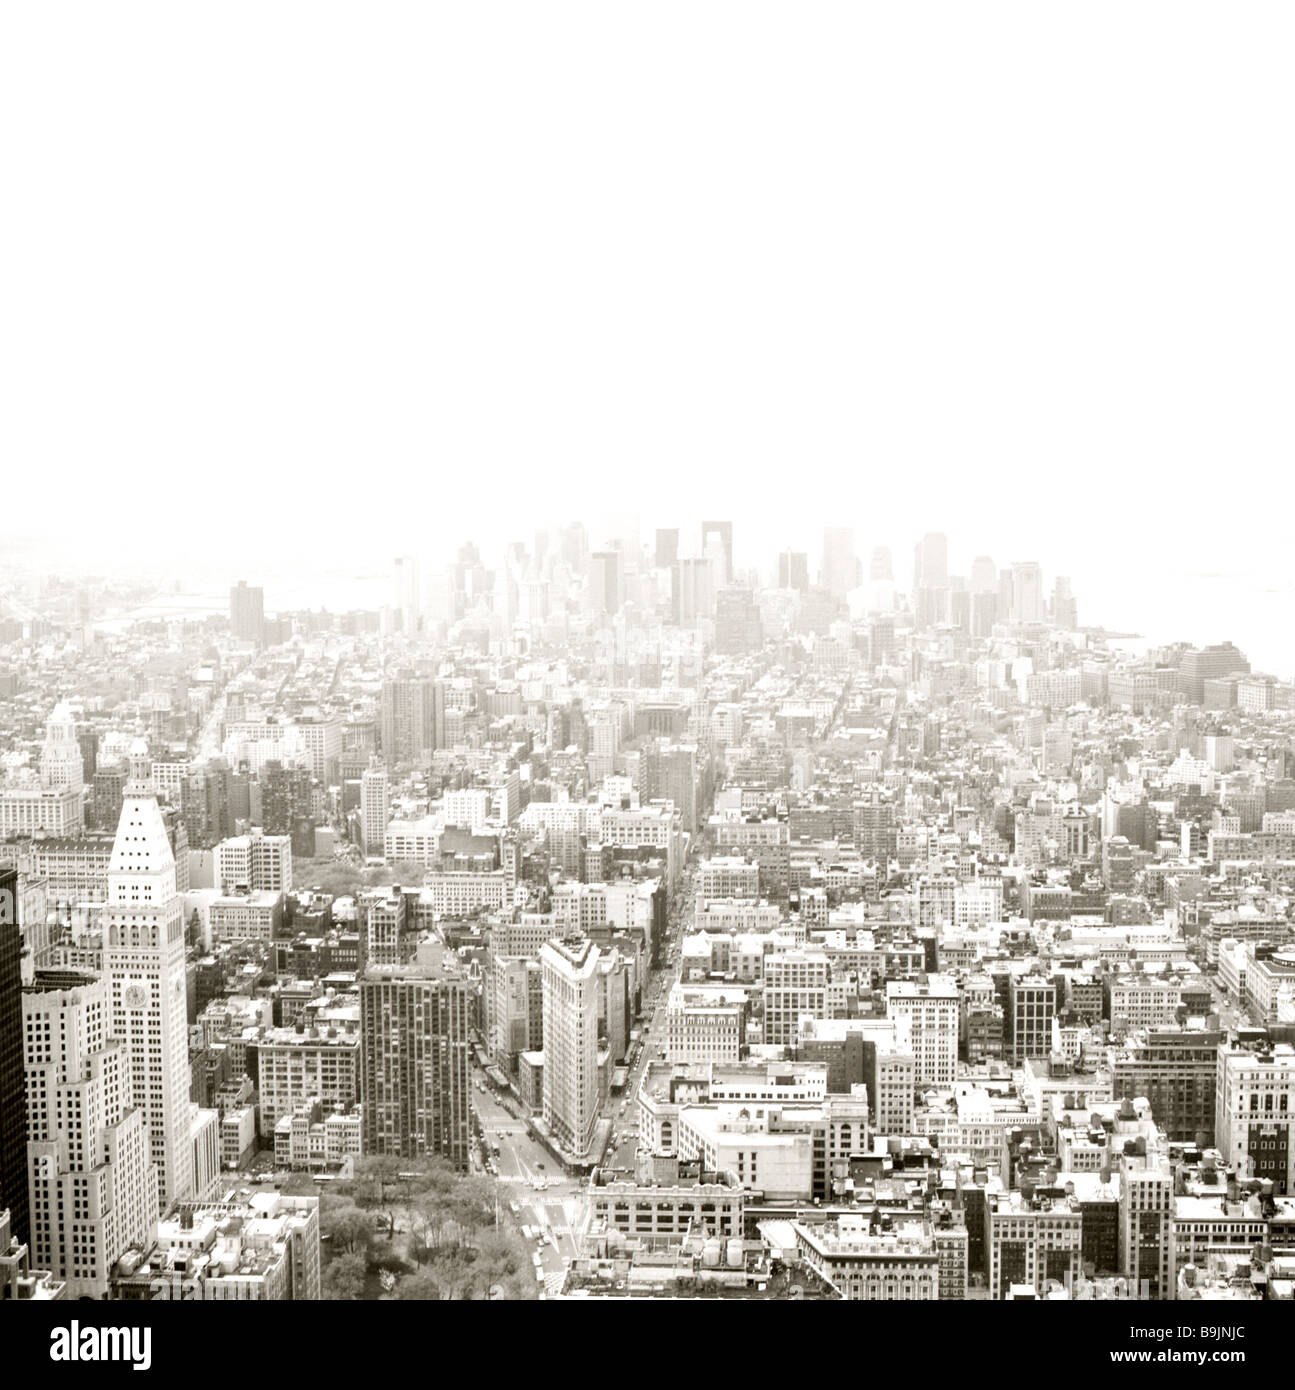 usa New York city city-overview s/w [M] North America city metropolis city view high-rises skyscrapers urbanity - Stock Image